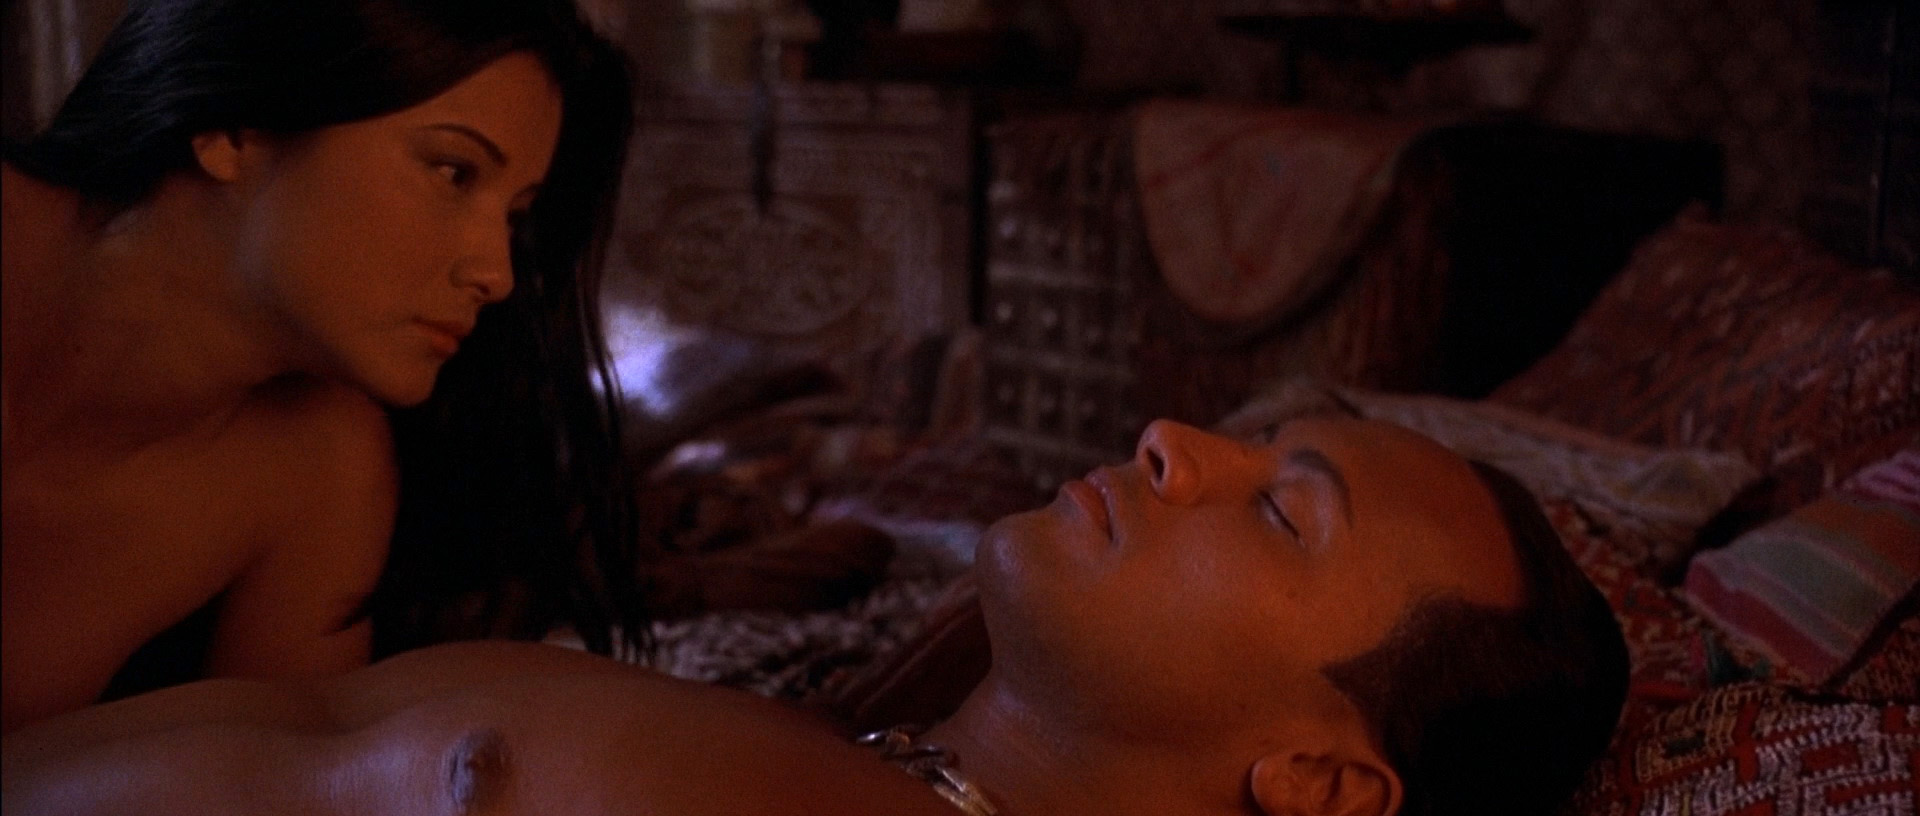 Kelly hu the scorpion king porn photos